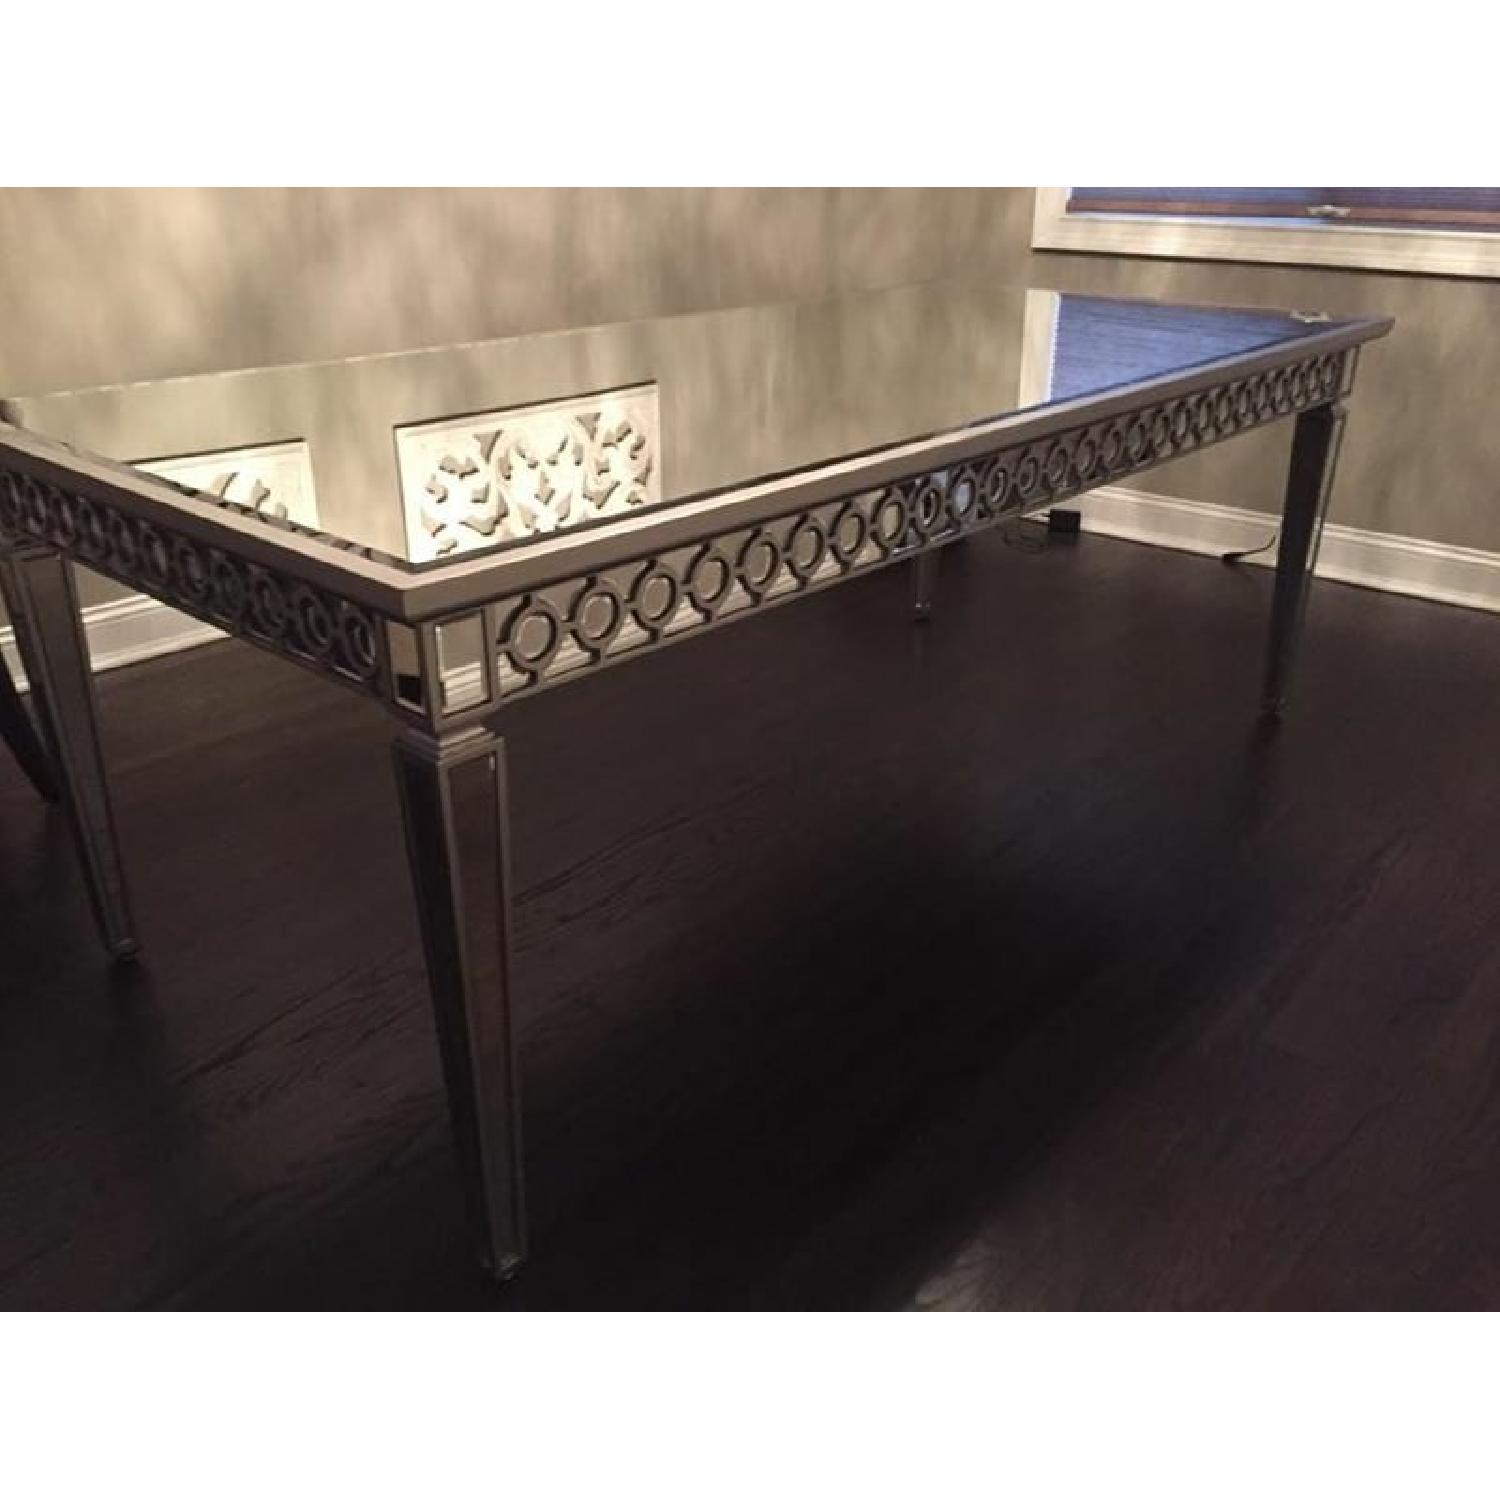 Z Gallerie Glass Dining Table AptDeco : 1500 1500 frame 0 from www.aptdeco.com size 1500 x 1500 jpeg 114kB